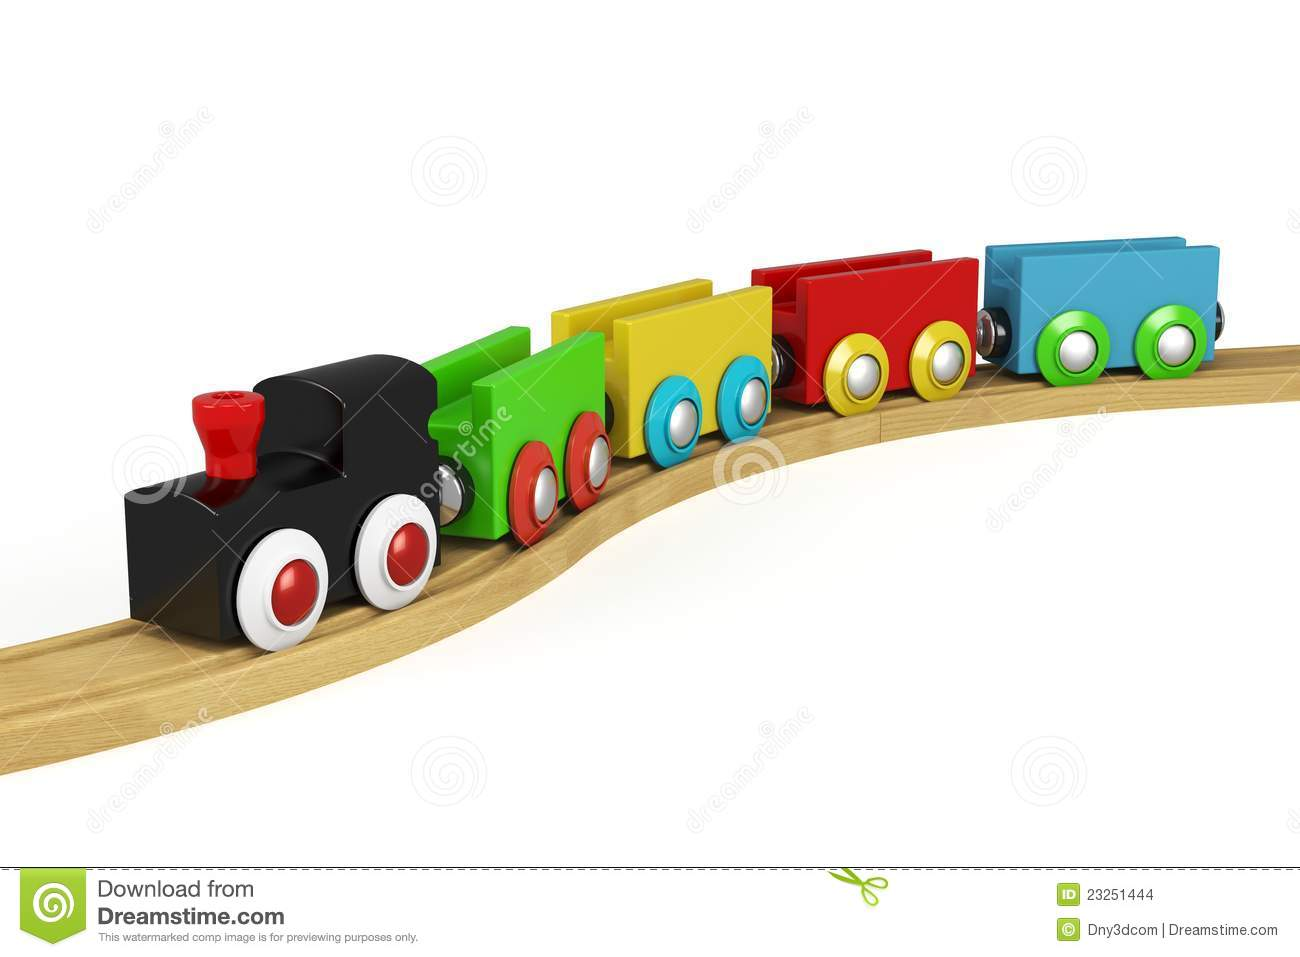 Simple Wooden Locomotive - Bing images